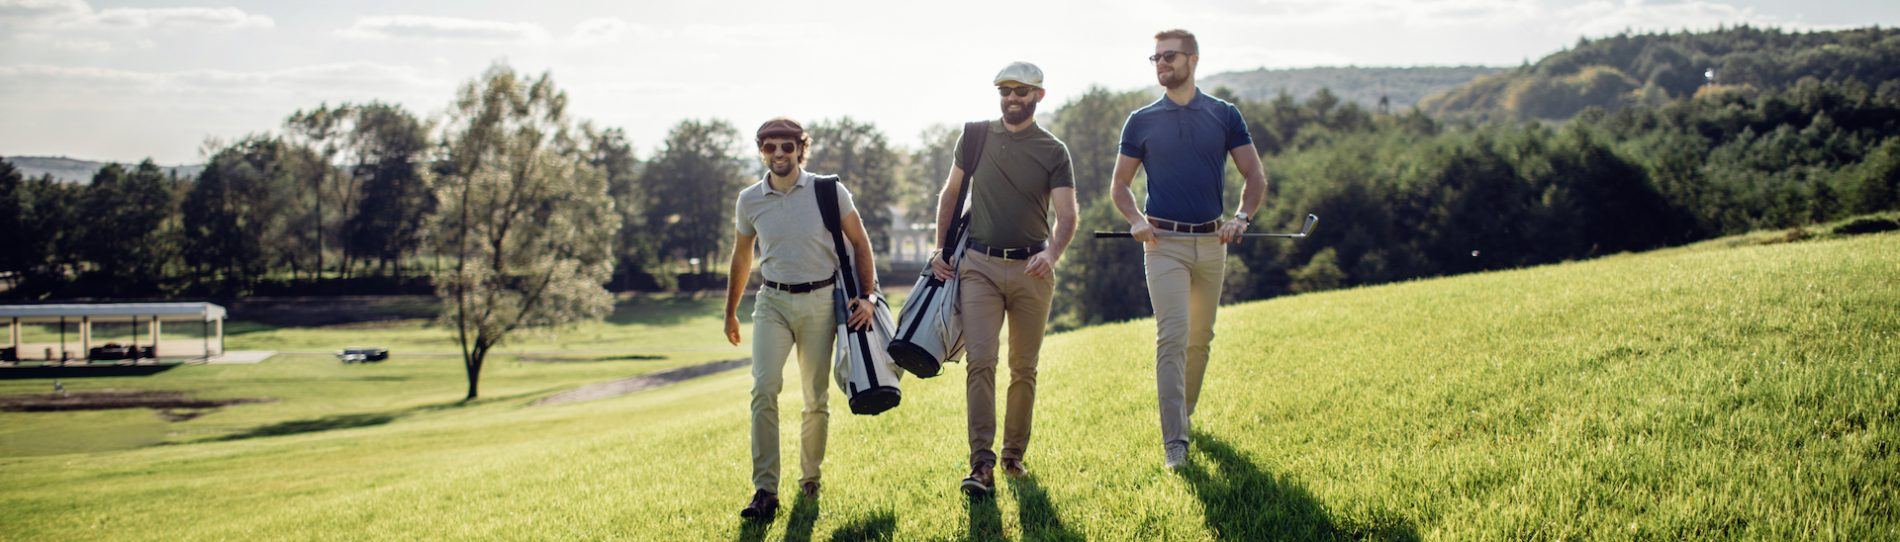 bucks walking on golf course with clubs